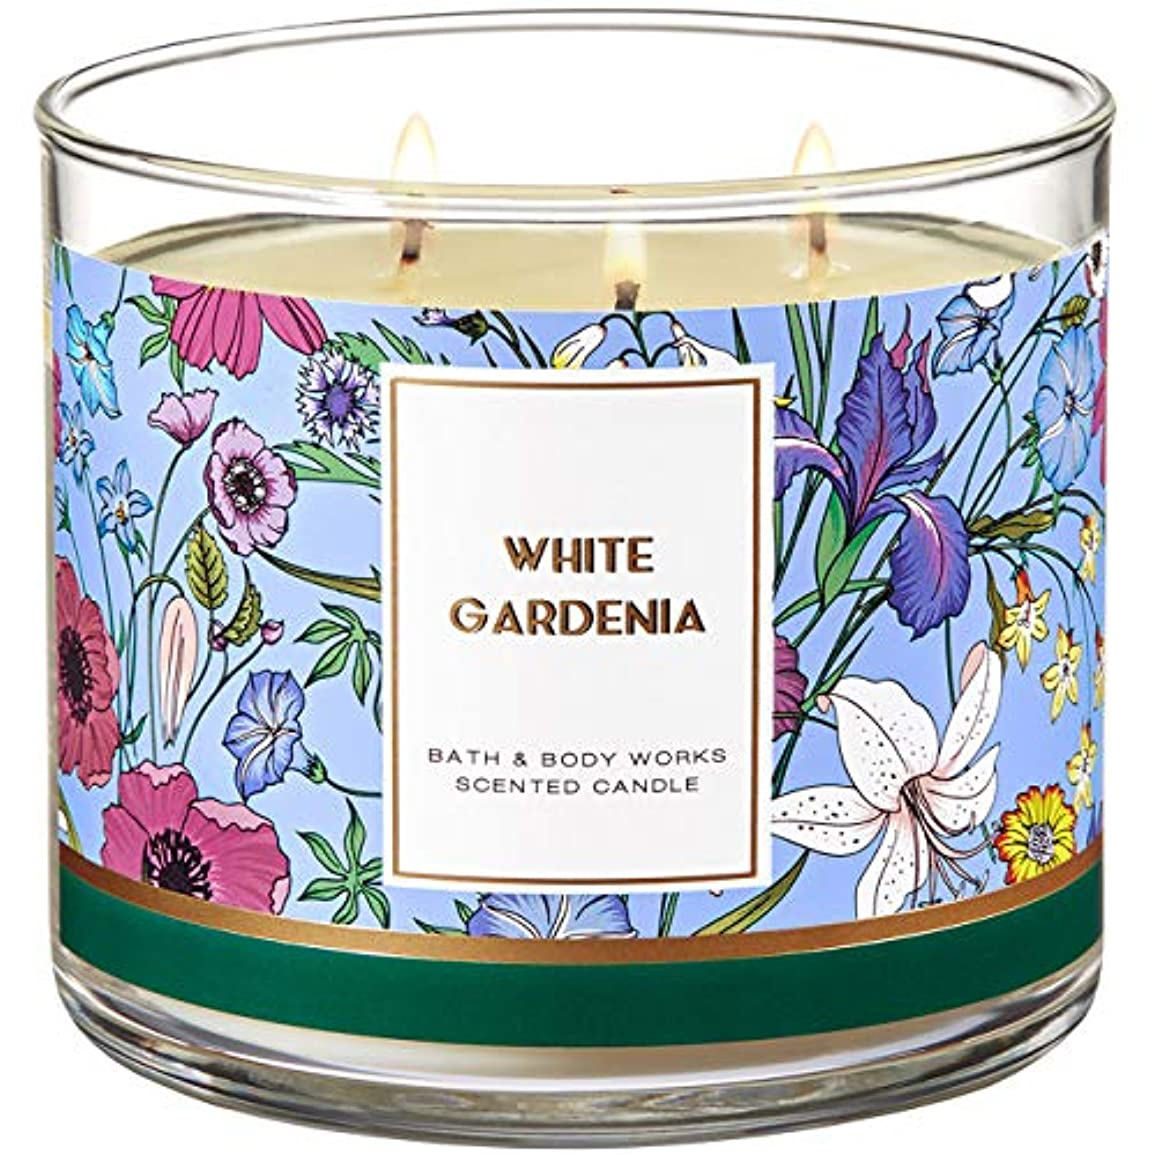 後継アナロジー単独でBath and Body Works 3 Wick Scented Candle White Gardenia 430ml